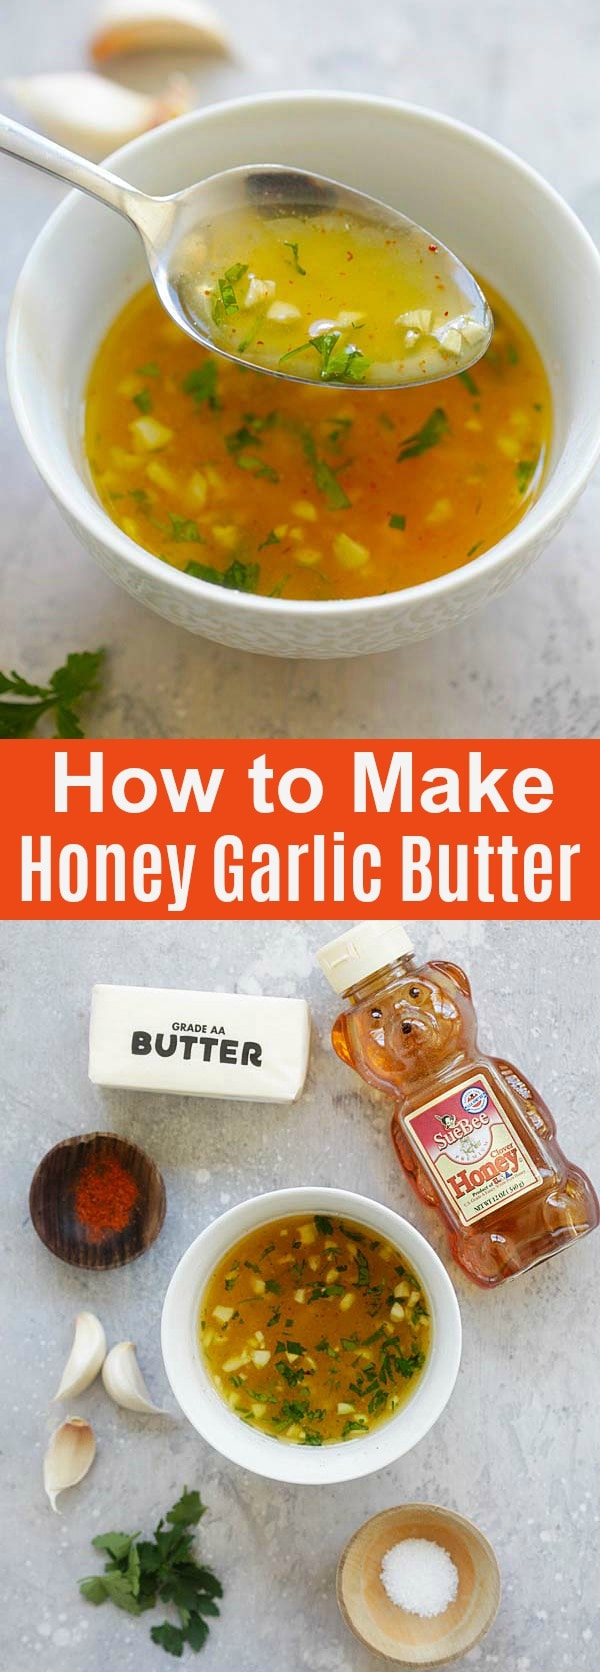 Honey Garlic Butter - the most amazing 5-ingredient sauce recipe you'll ever make. So easy and you can use it on anything. Weeknight dinner is a breeze with this magic sauce | rasamalaysia.com